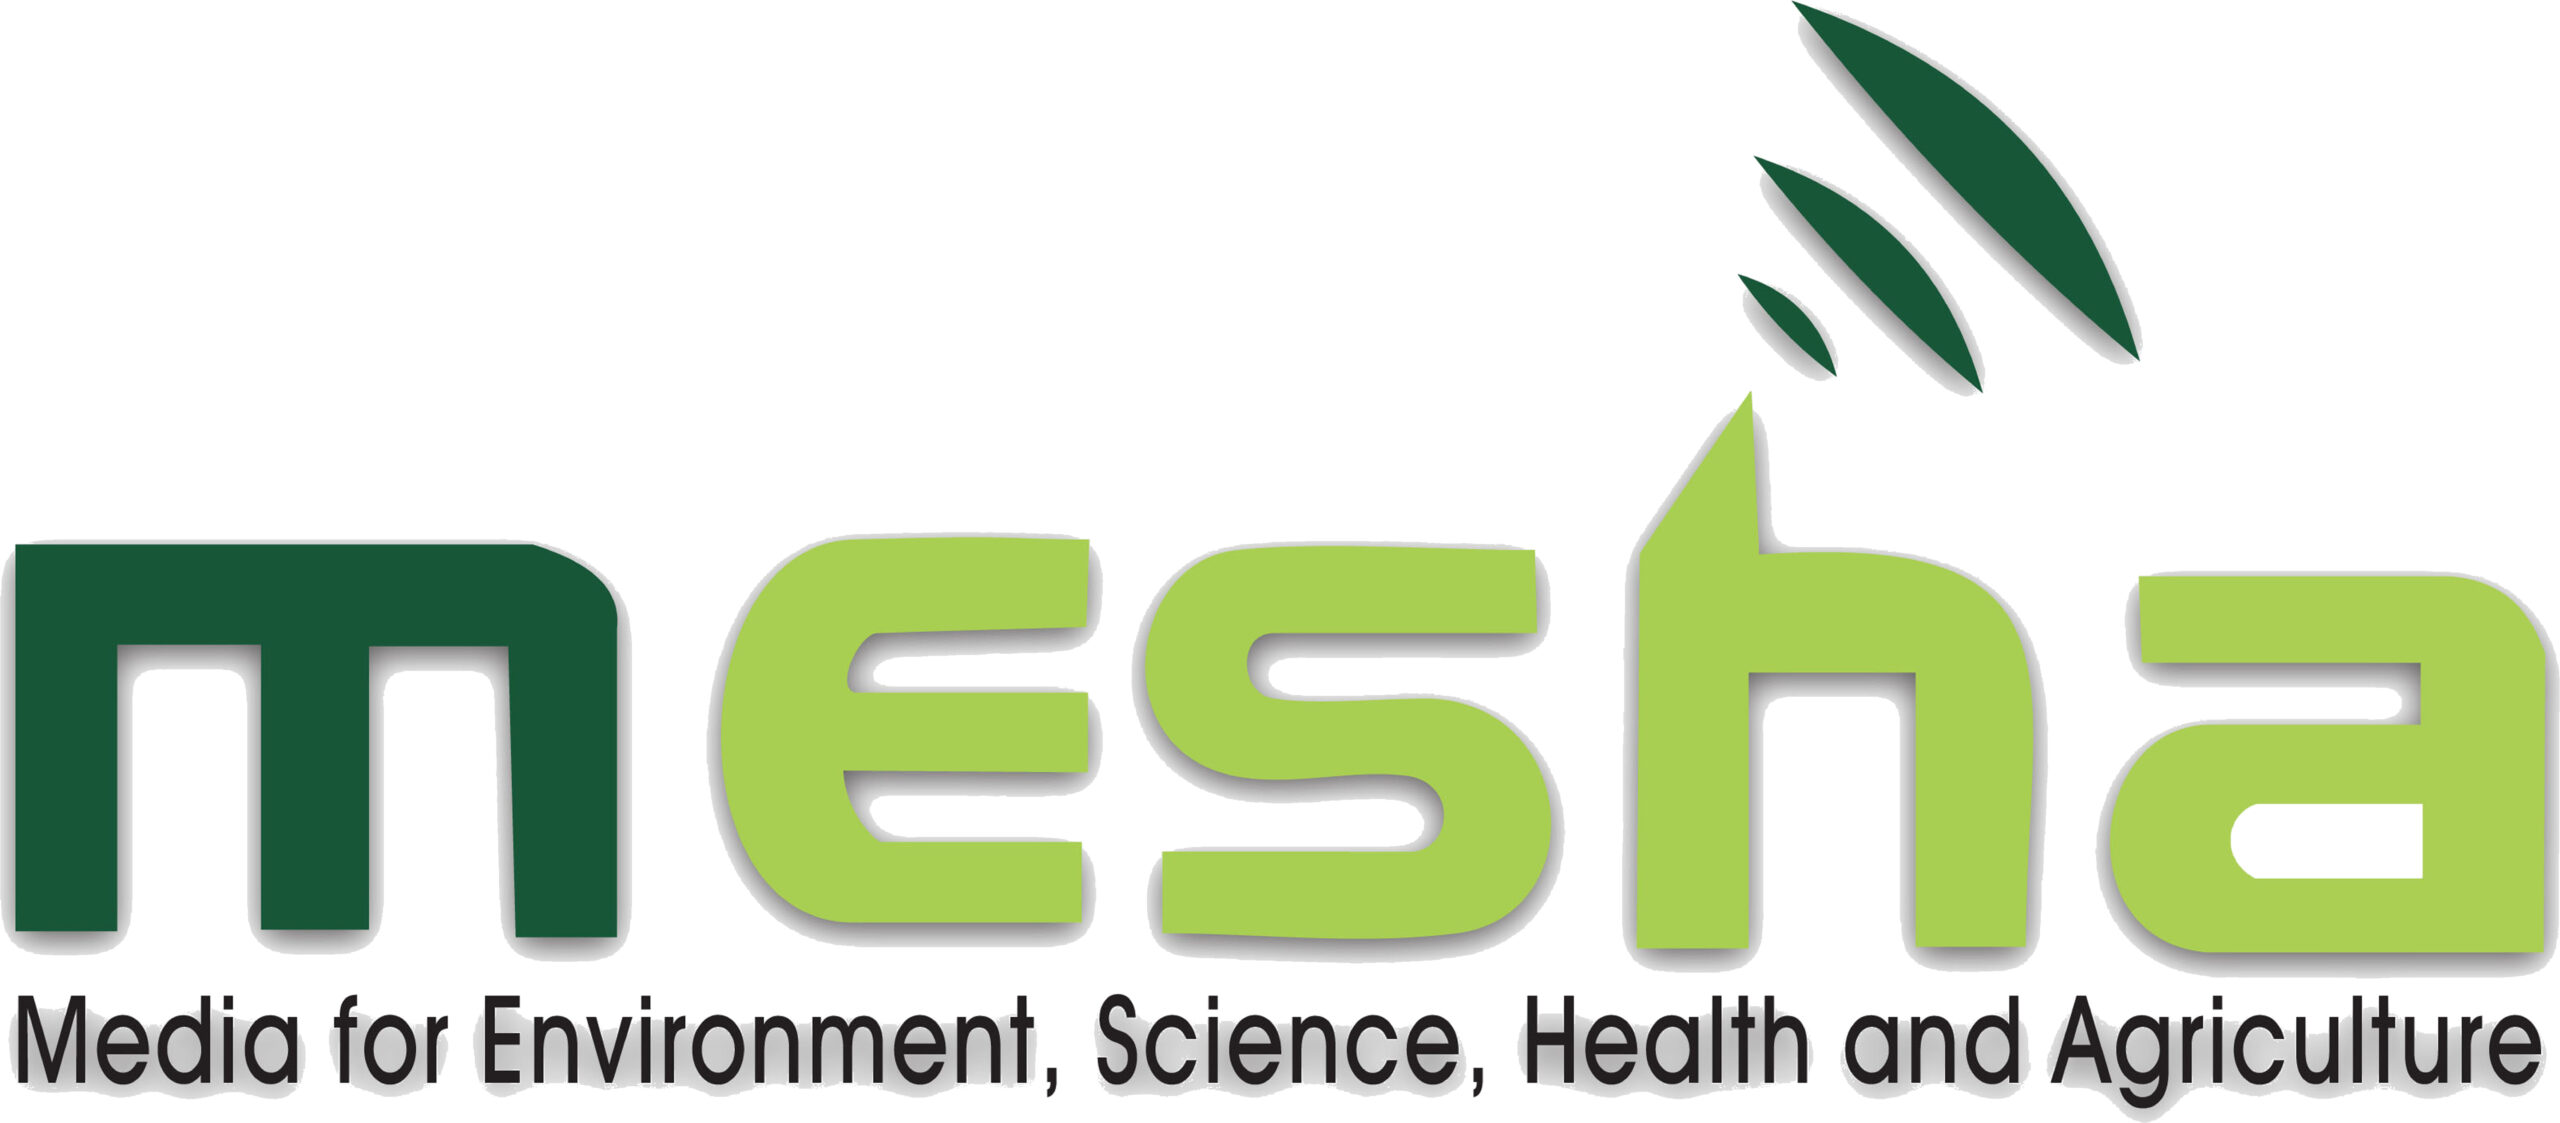 Media for Environment, Science, Health and Agriculture (MESHA